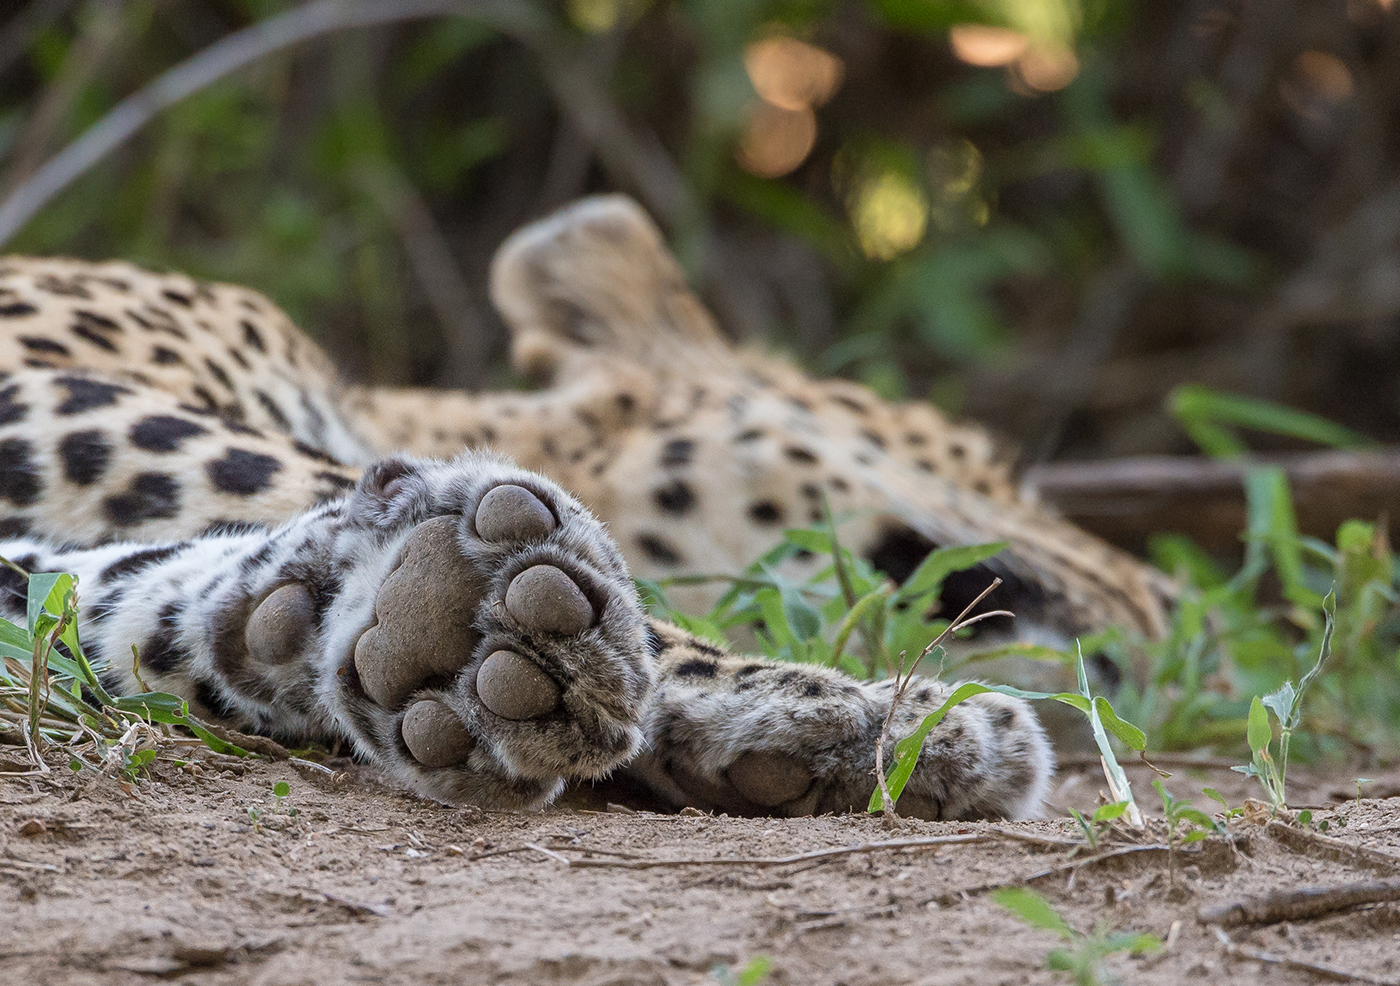 e149eb55ab15 tutlwa-1 - A close up of a leopard's paw, showing how the claws